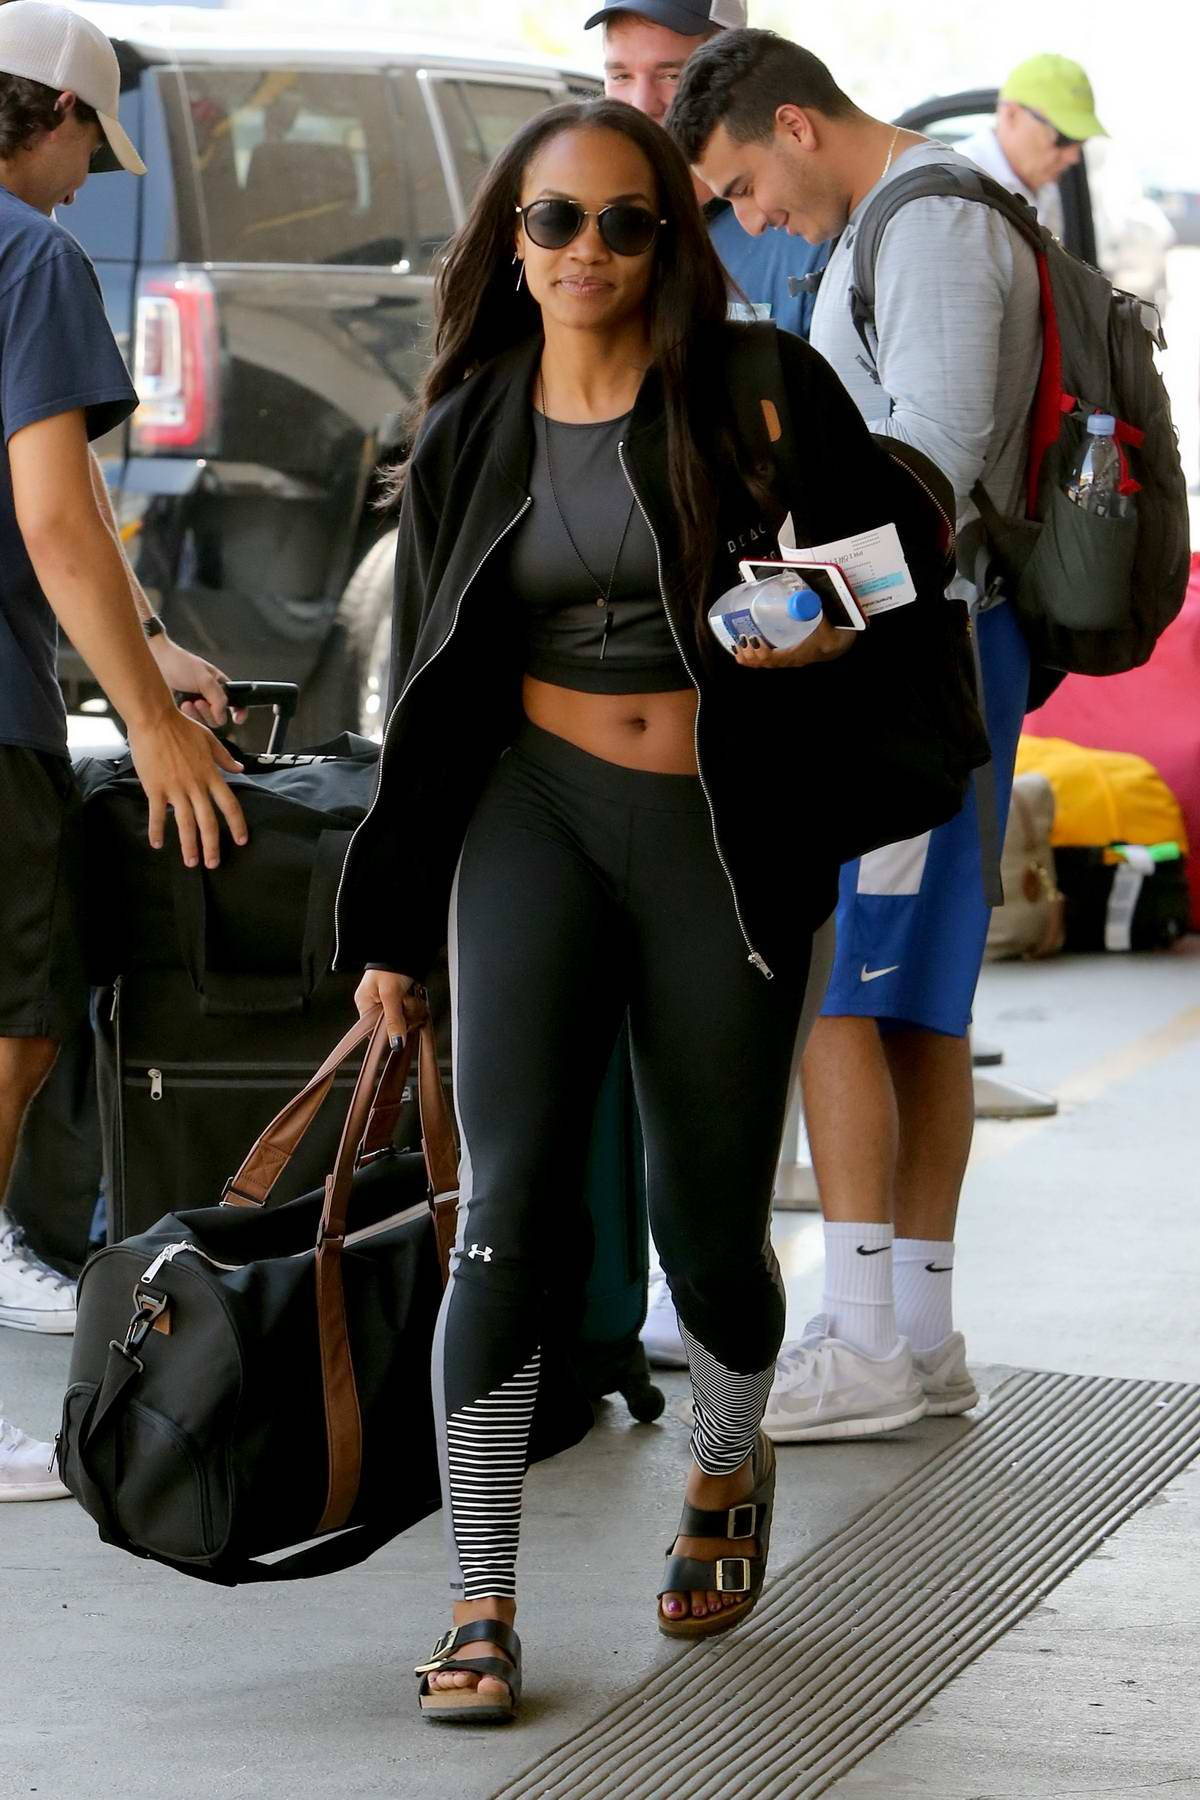 Rachel Lindsay jets out of LAX after filming the 'Men Tell All' episode of the Bachelorette in Los Angeles